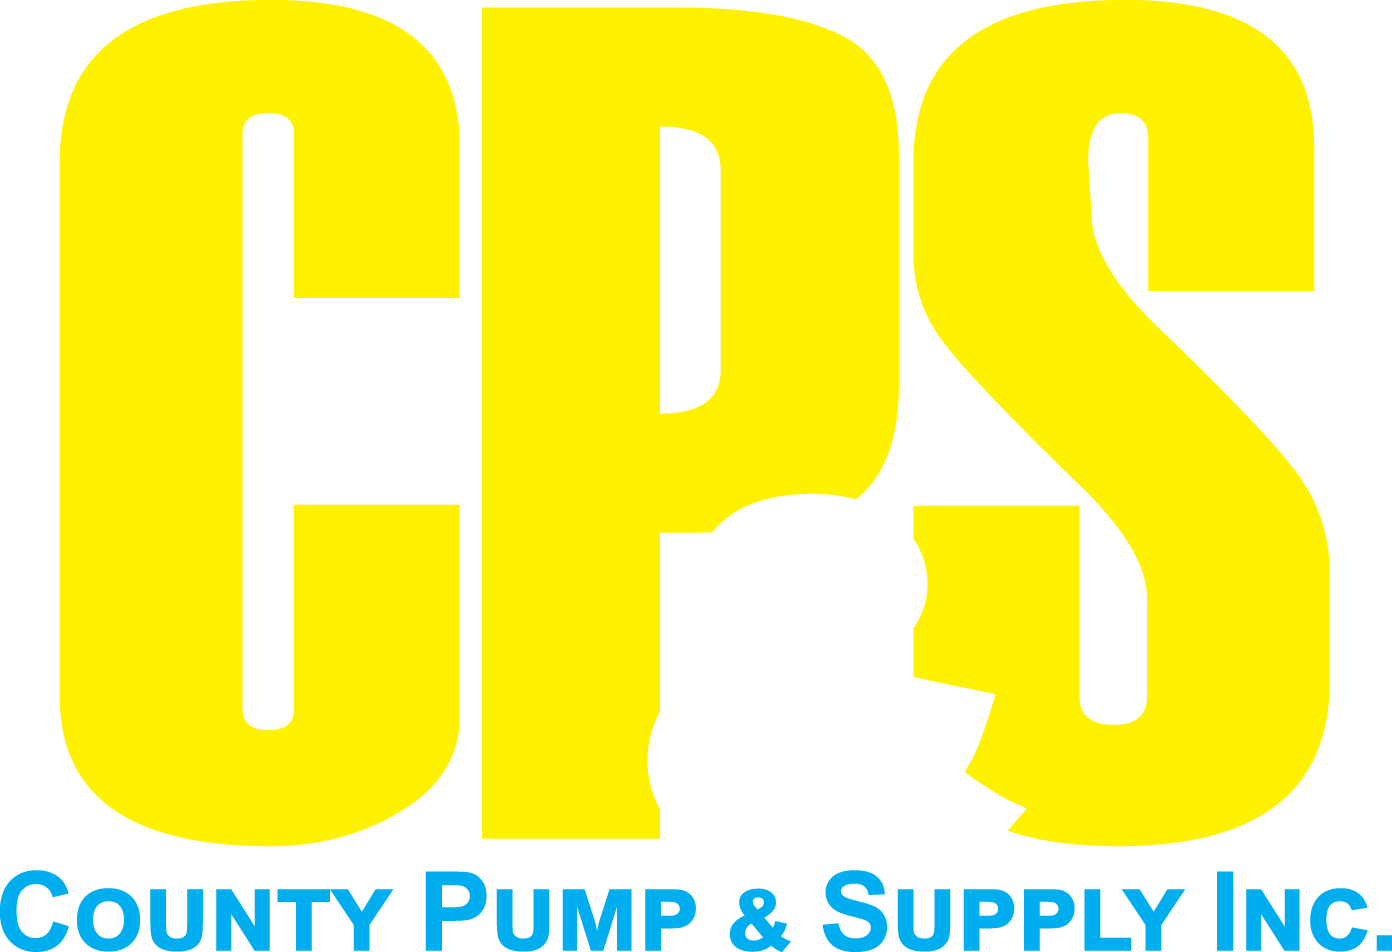 County Pump & Supply, Inc.